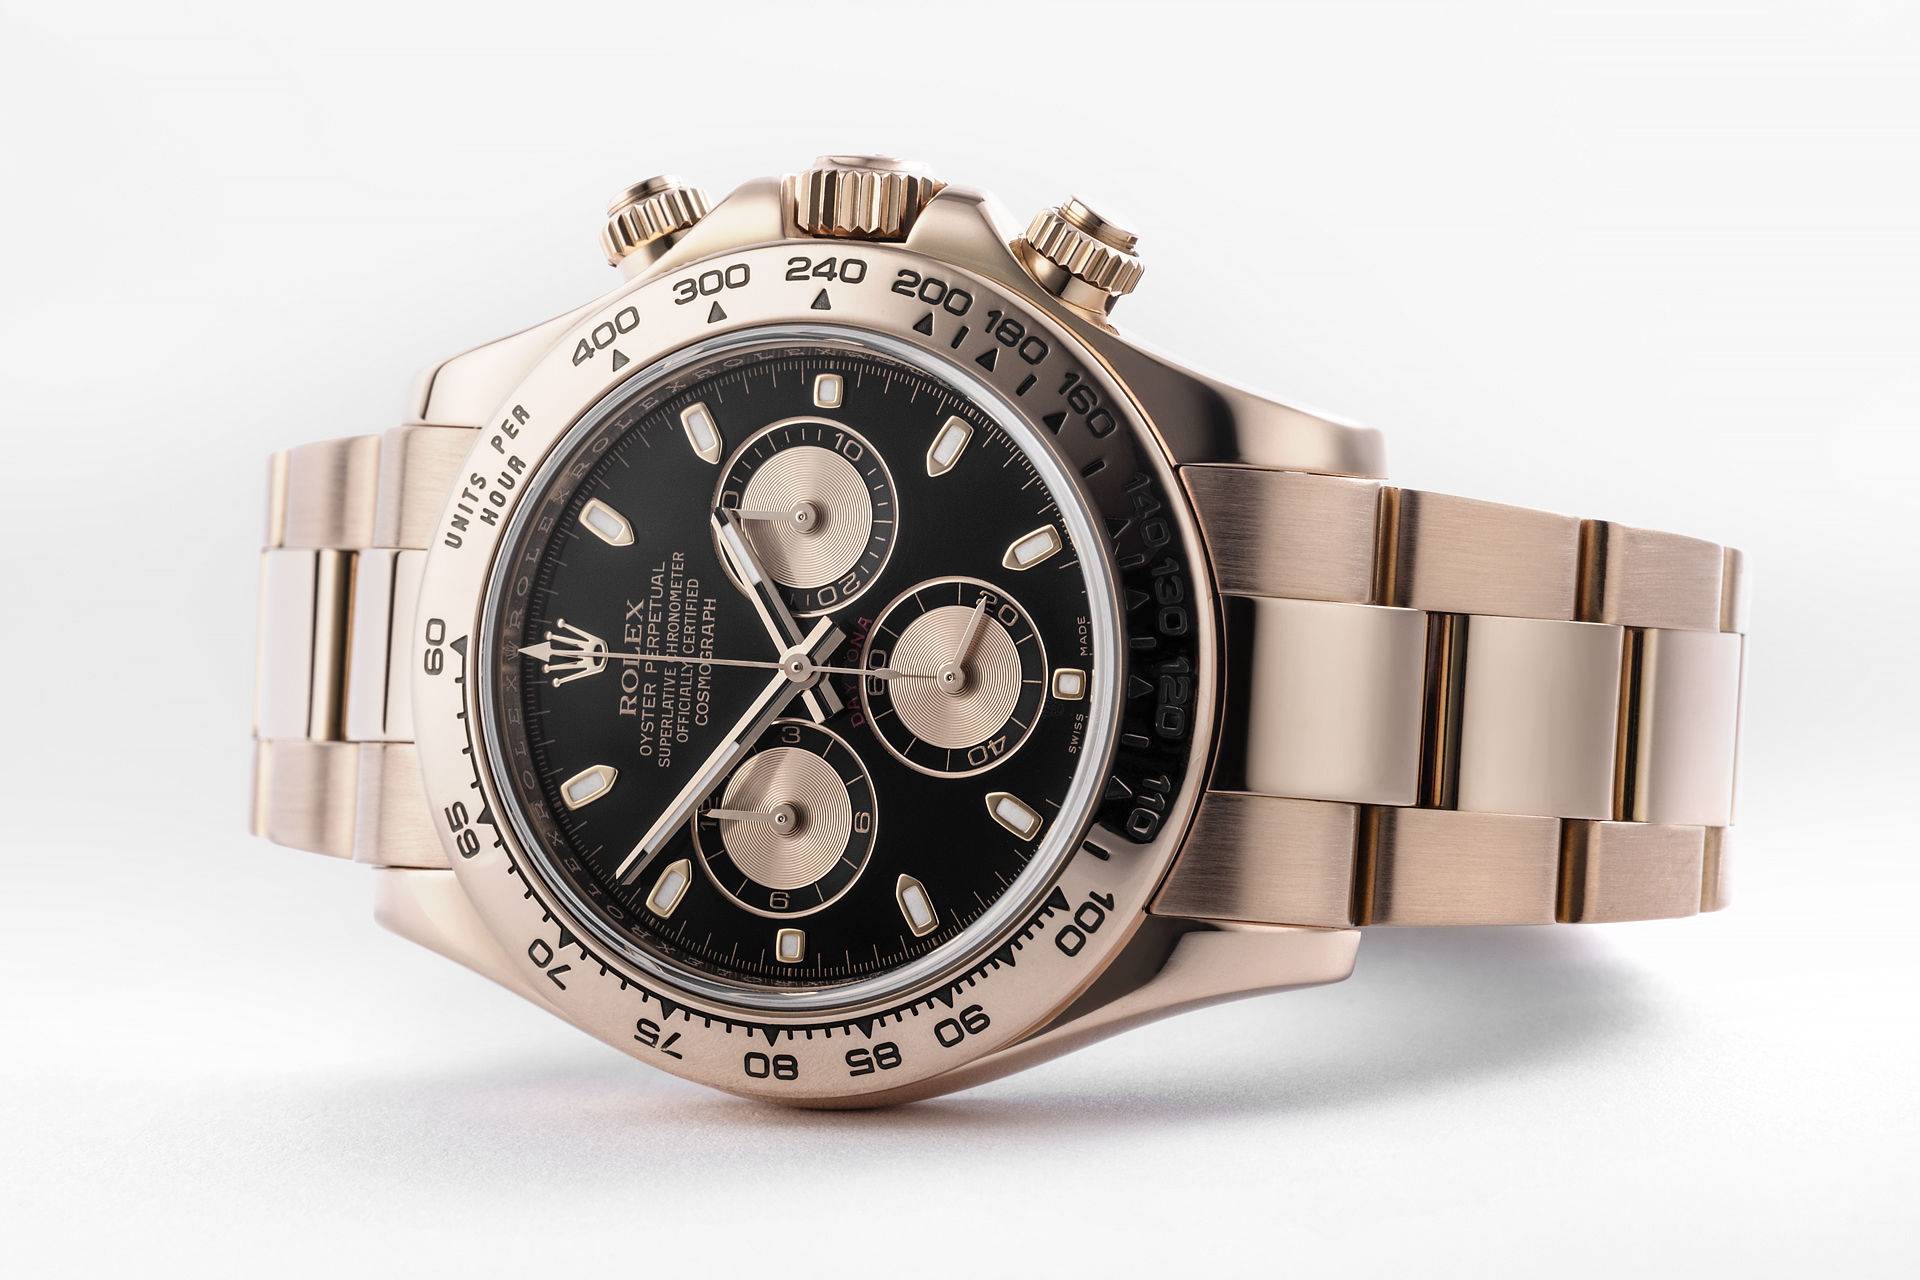 ref 116505 | Box & Papers | Rolex Cosmograph Daytona